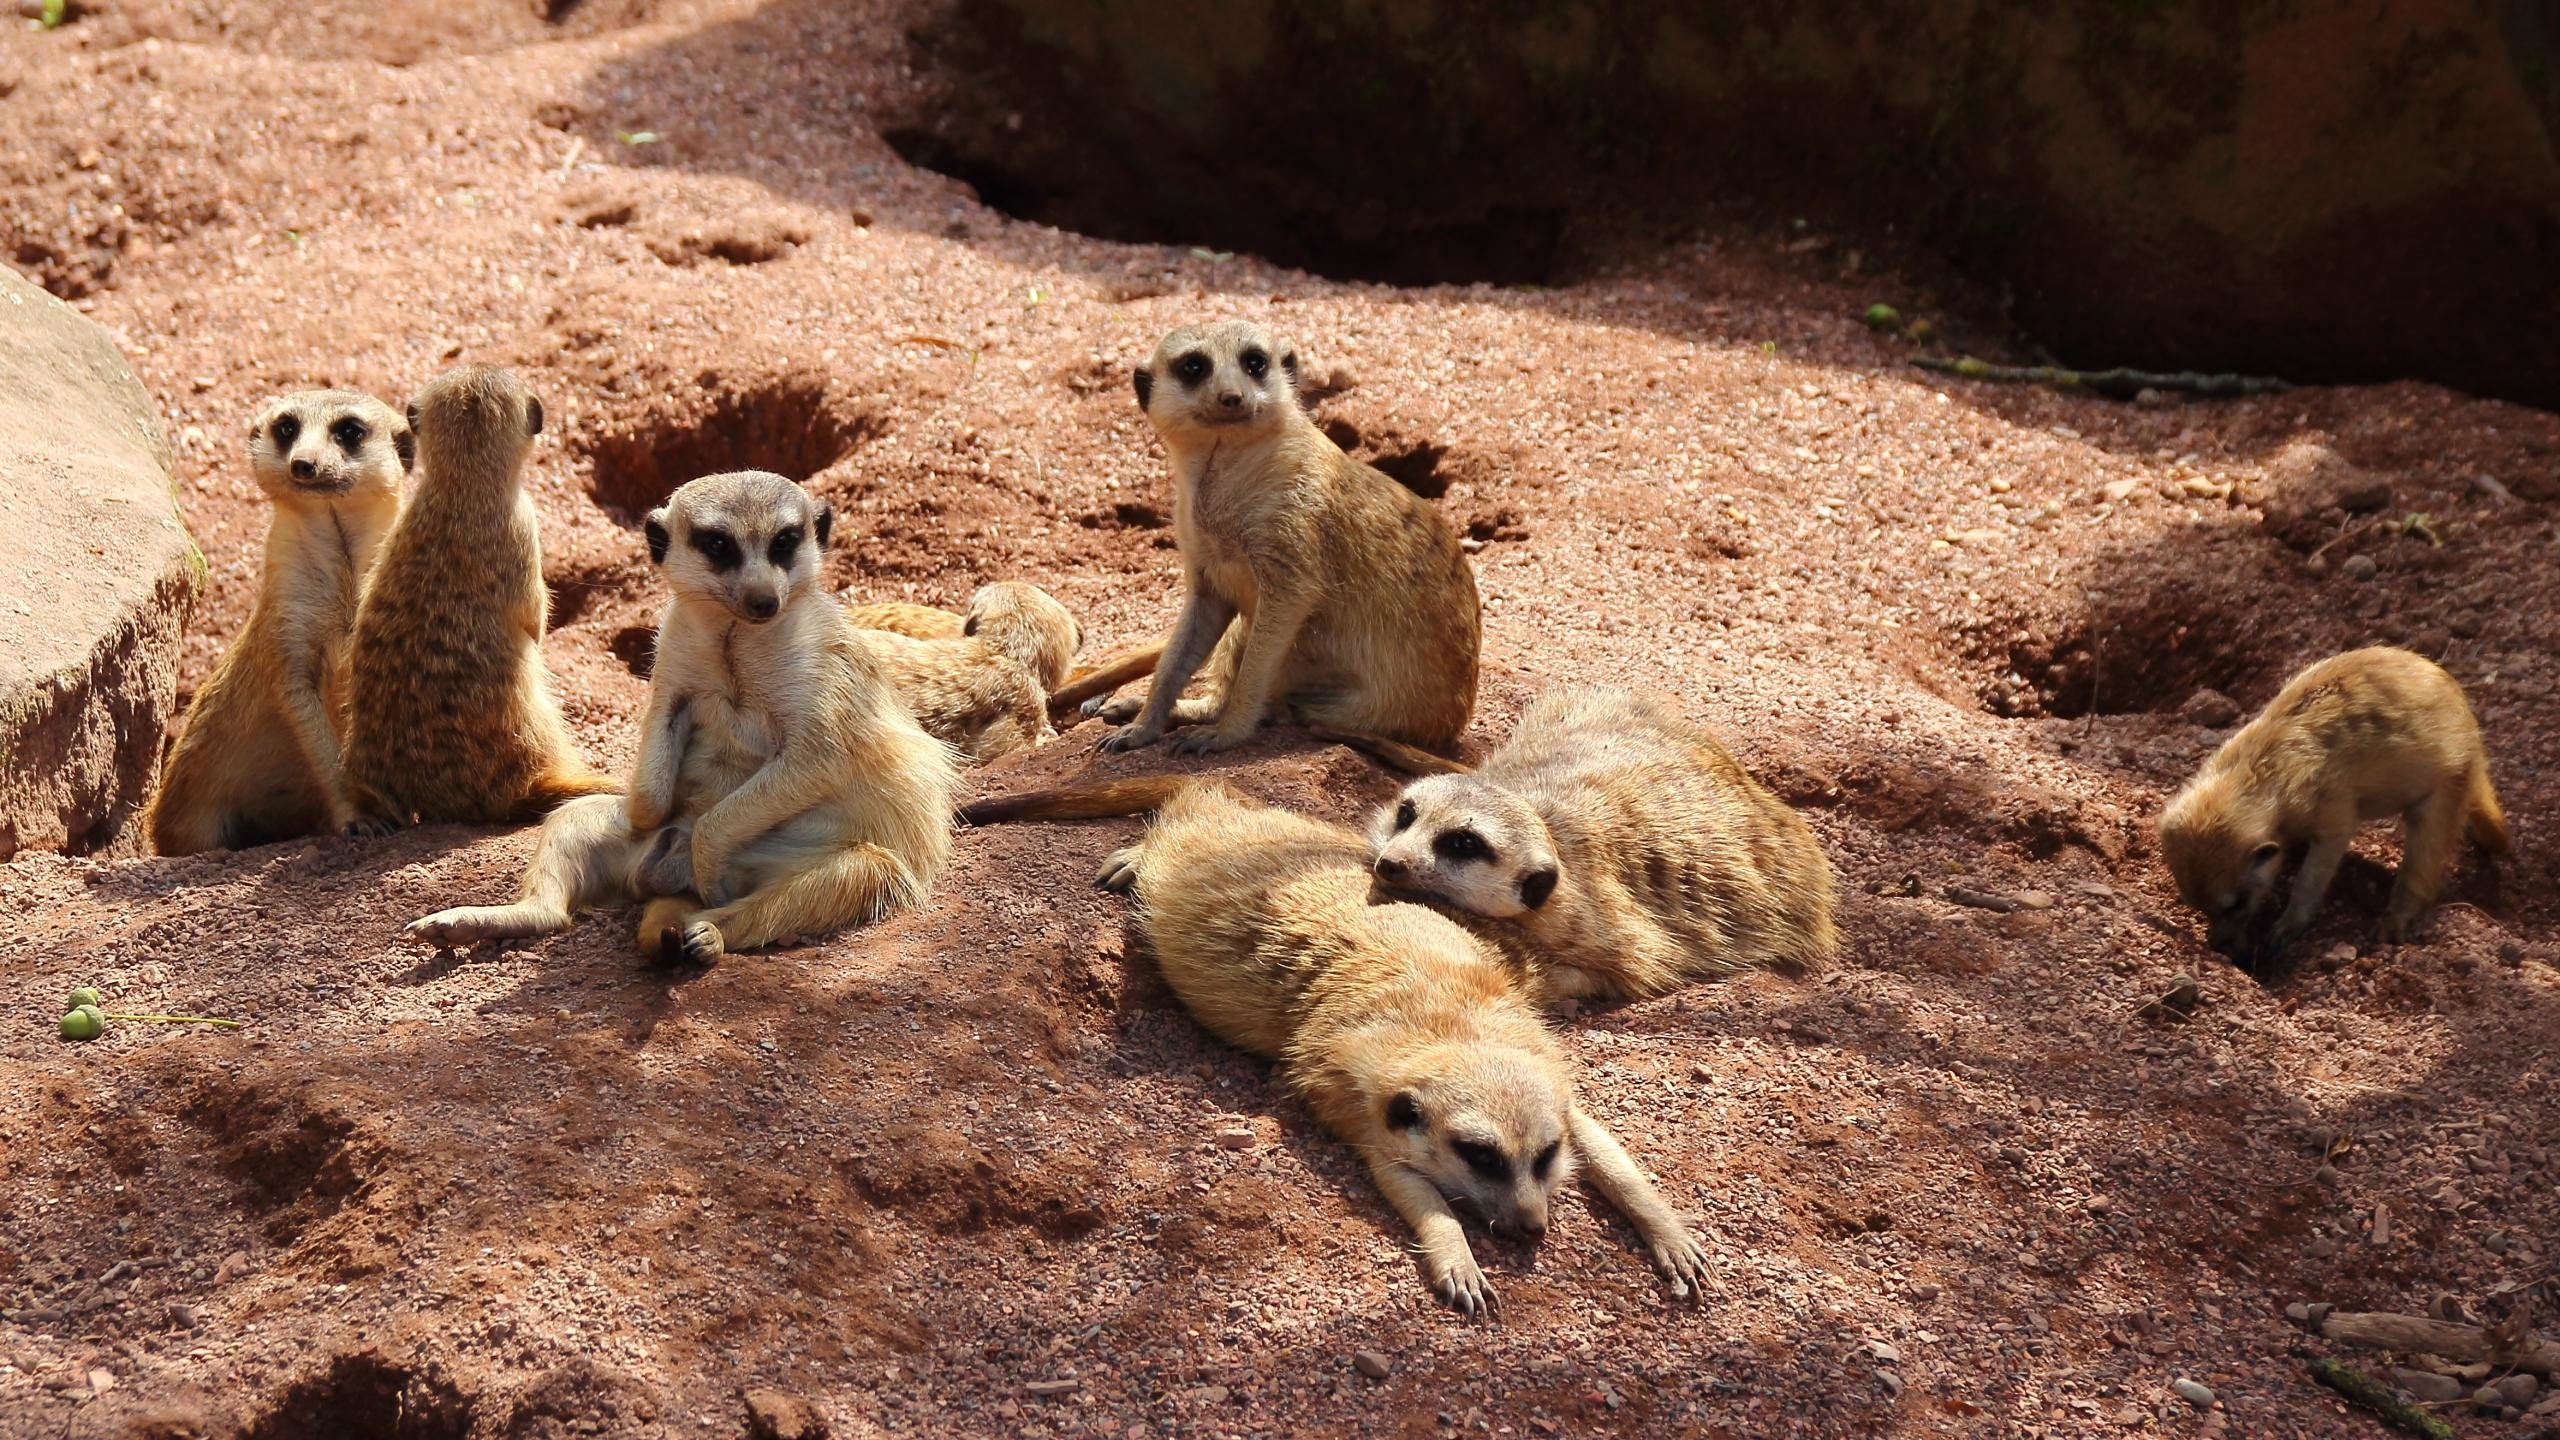 High resolution Meerkat hd 2560x1440 background ID:164576 for desktop